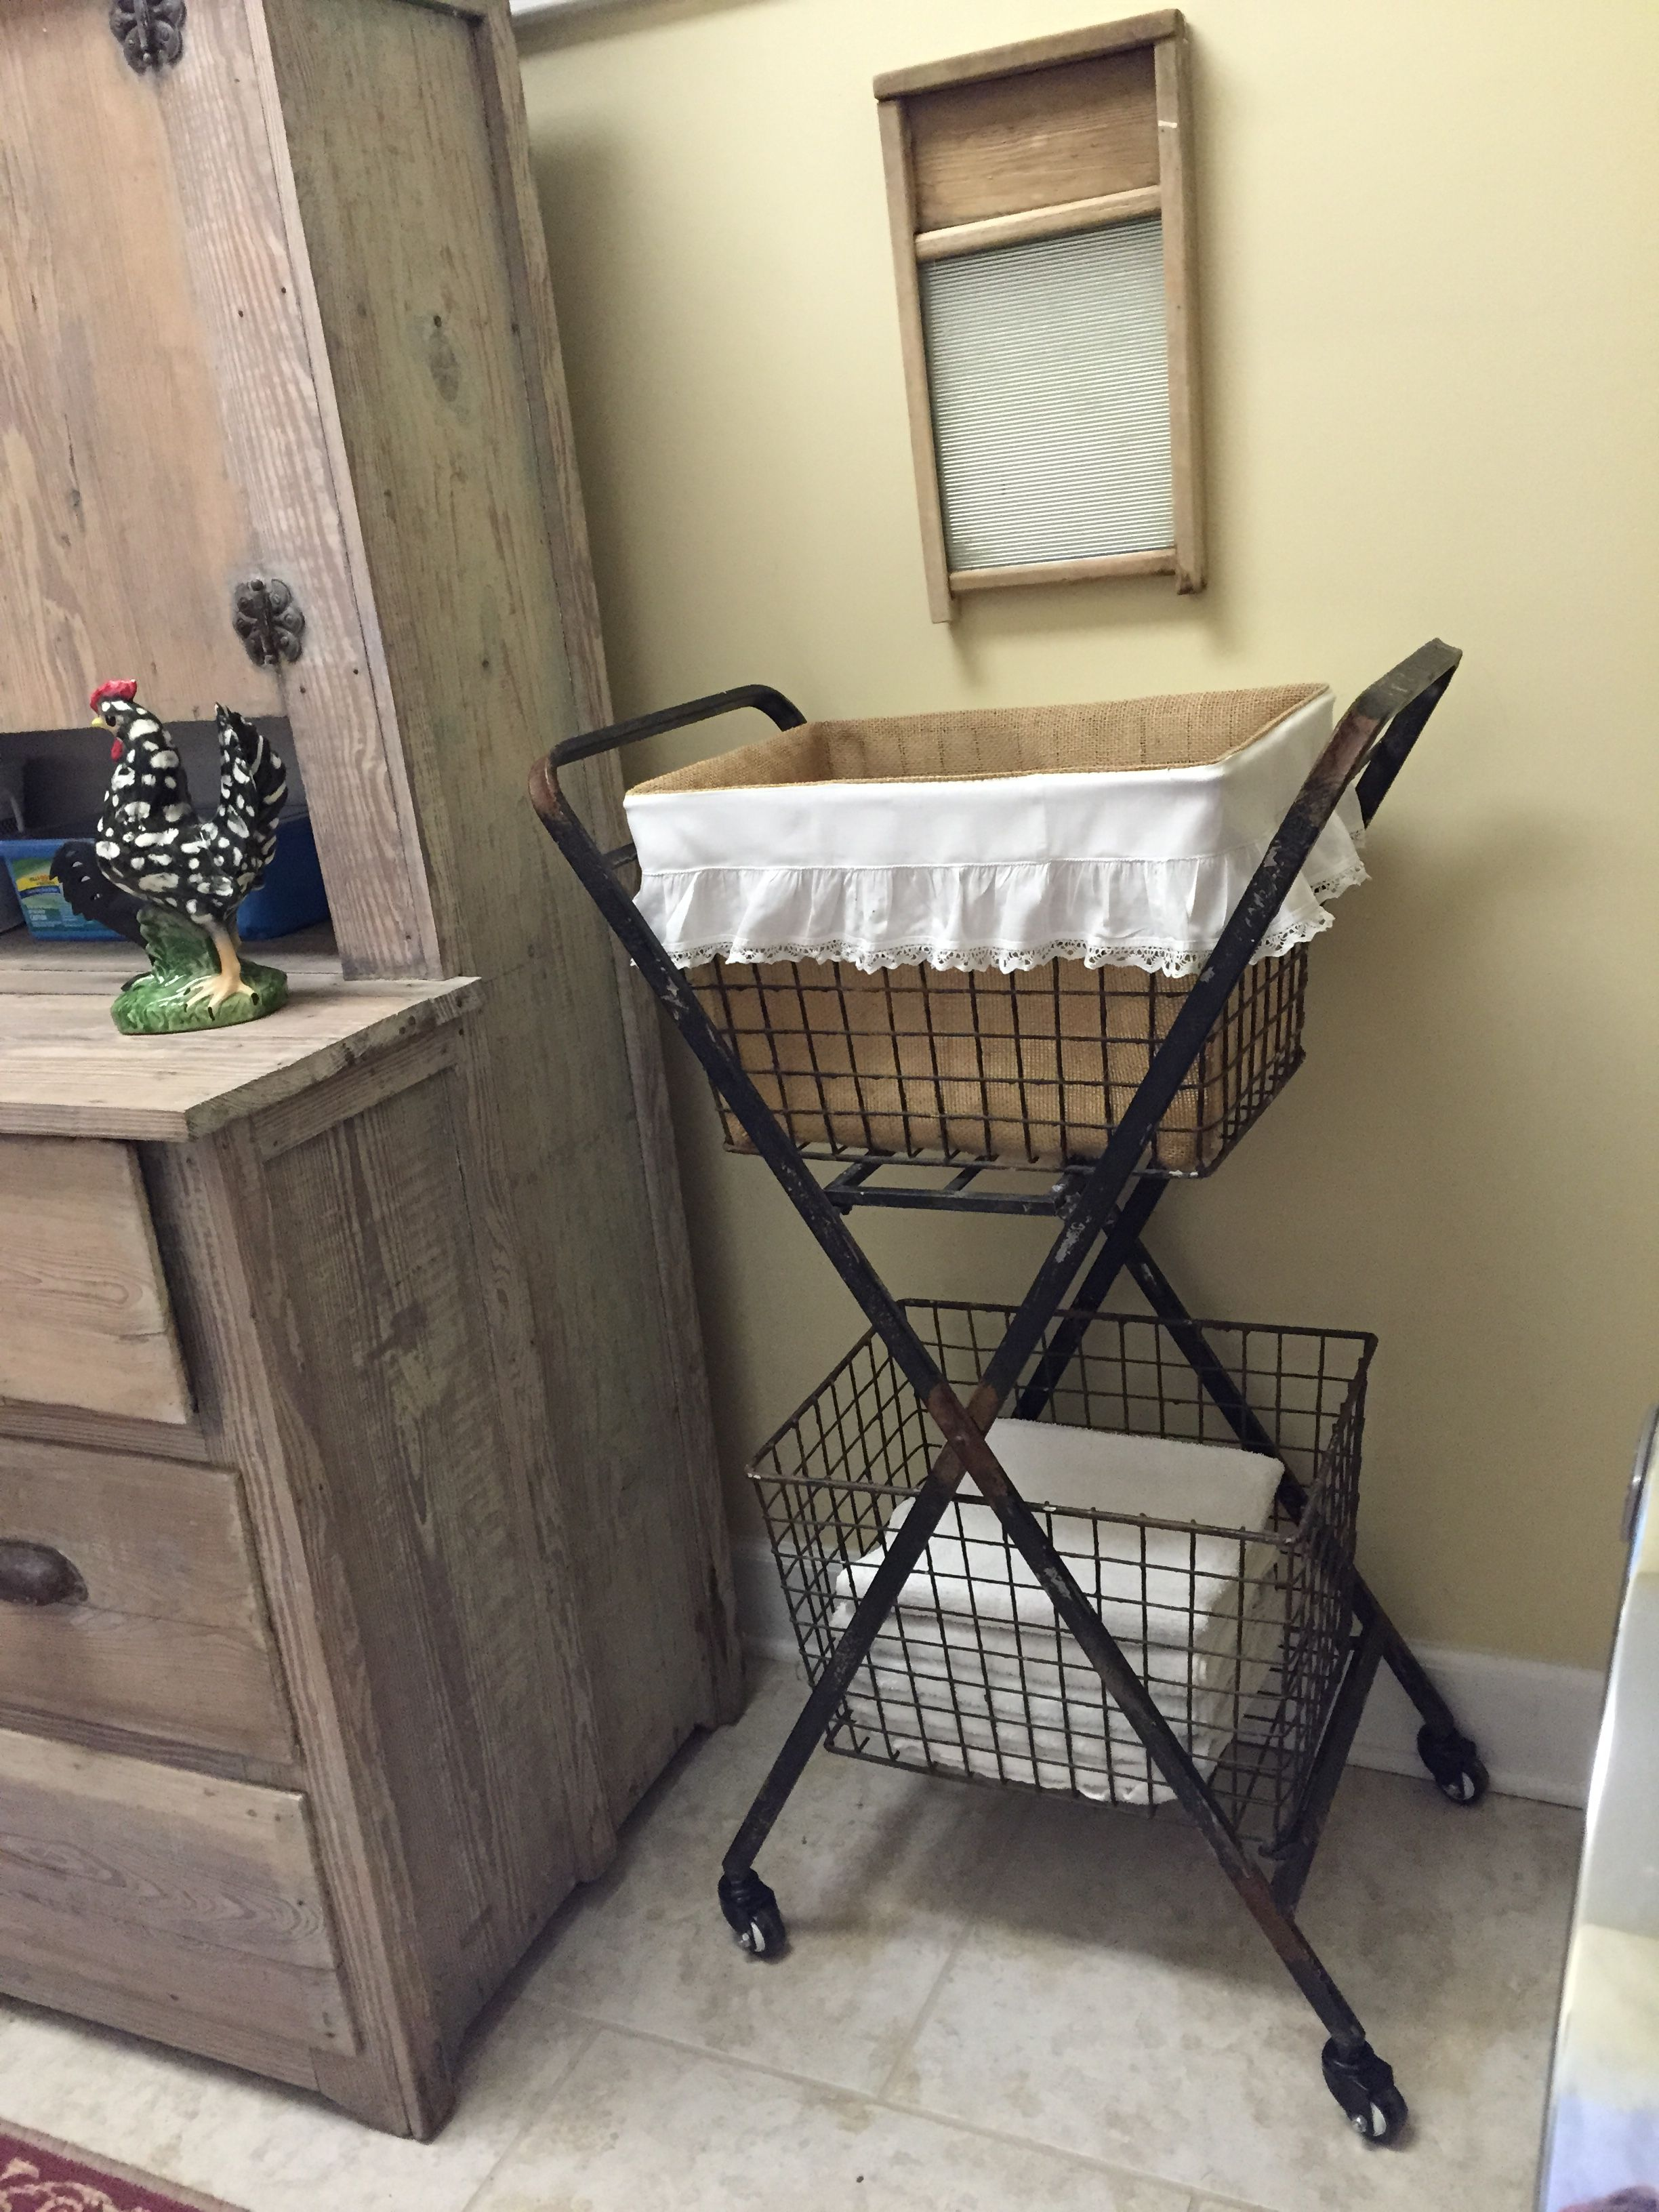 Vintage style basket cart perfect for my laundry